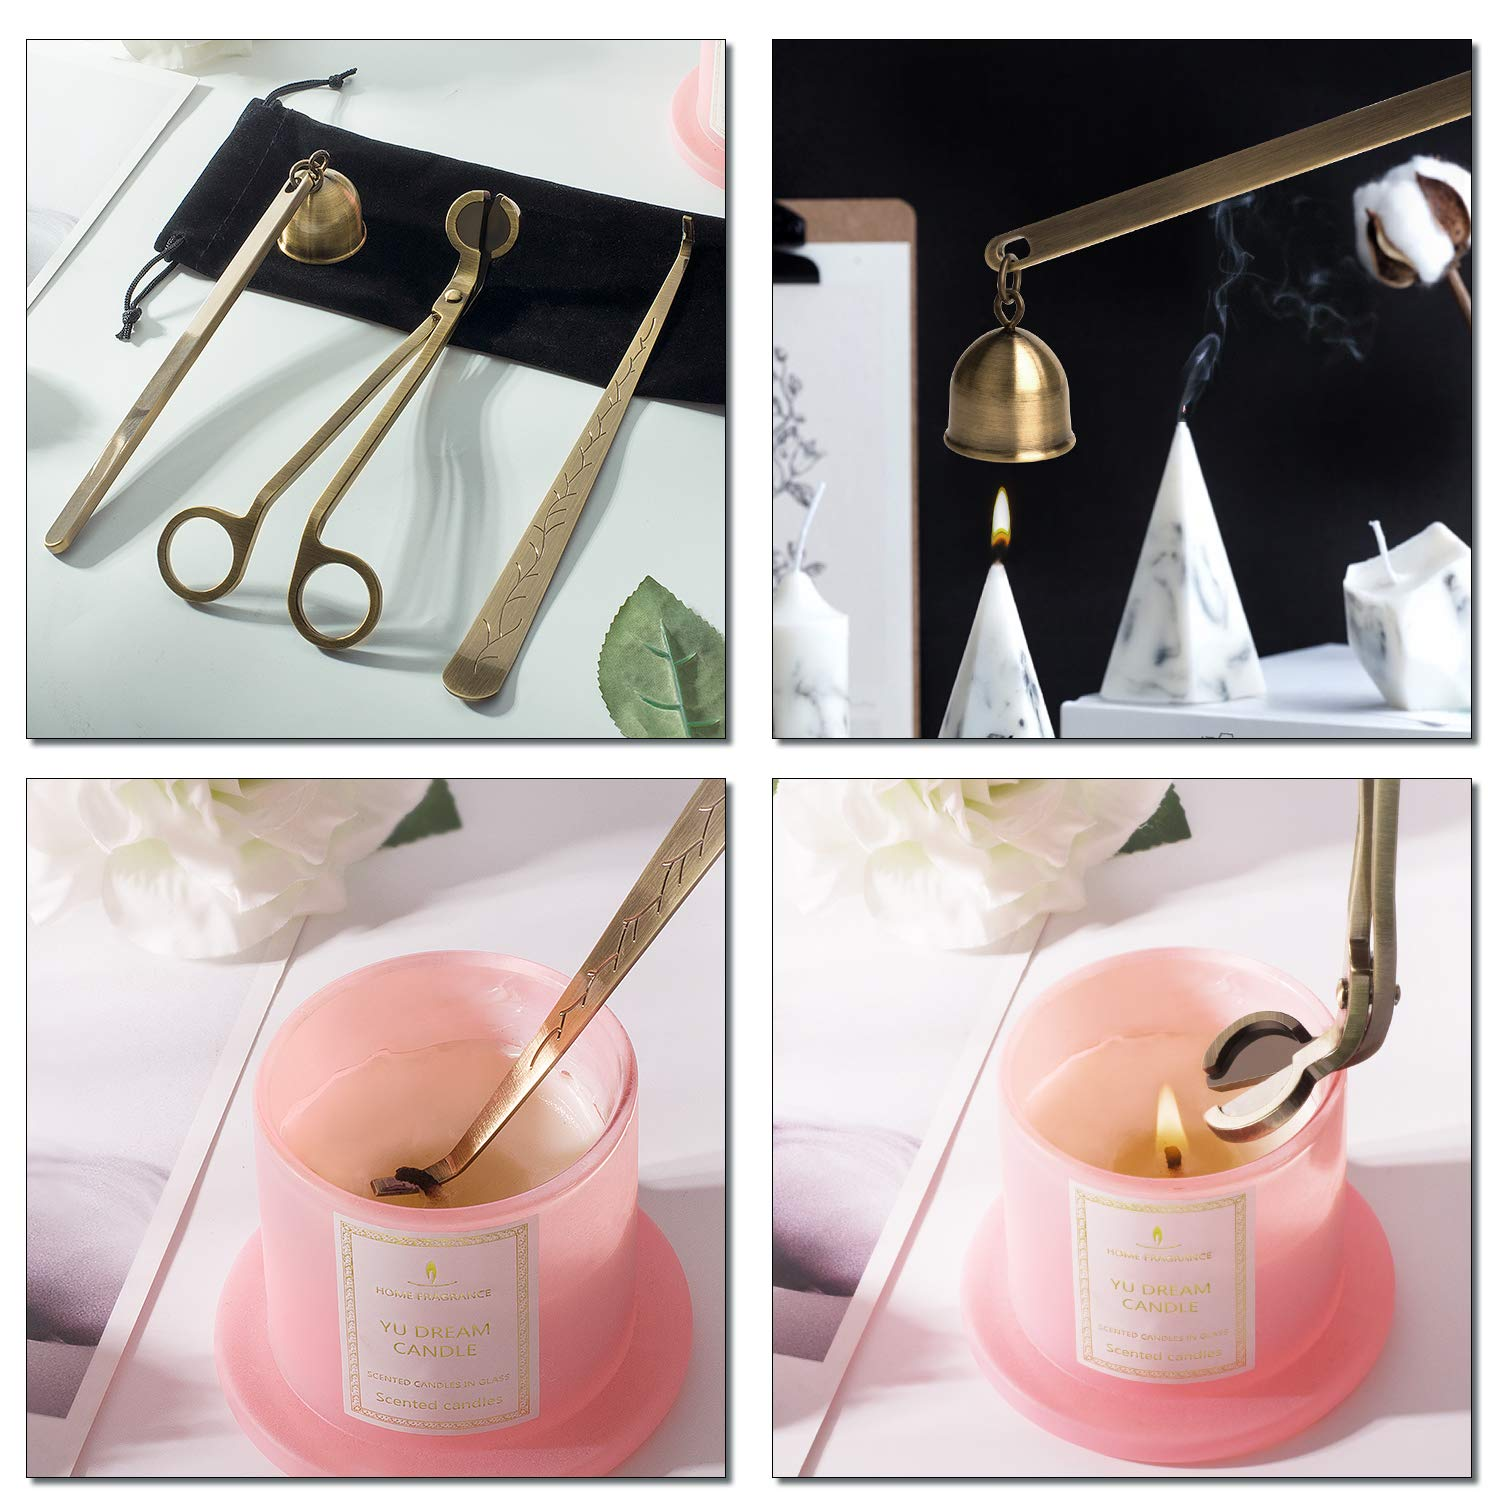 DANGSHAN Candle Snuffer Candle Accessory Set, 3 in 1 Candle Wick Trimmer, Candle Wick Dipper, Candle Snuffers (Bronze) by DANGSHAN (Image #7)